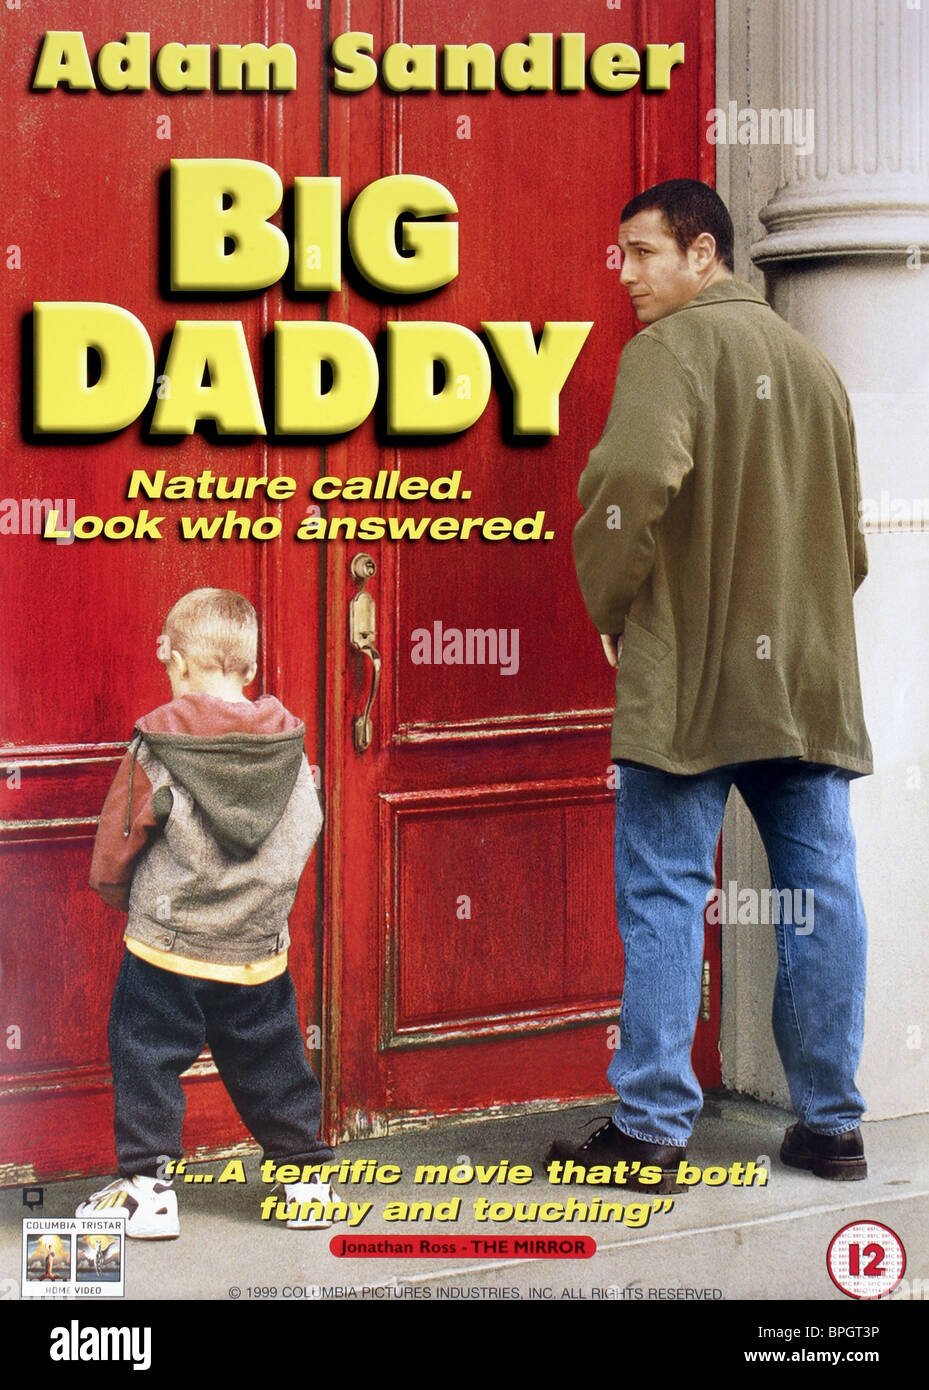 big daddy film stock photos amp big daddy film stock images